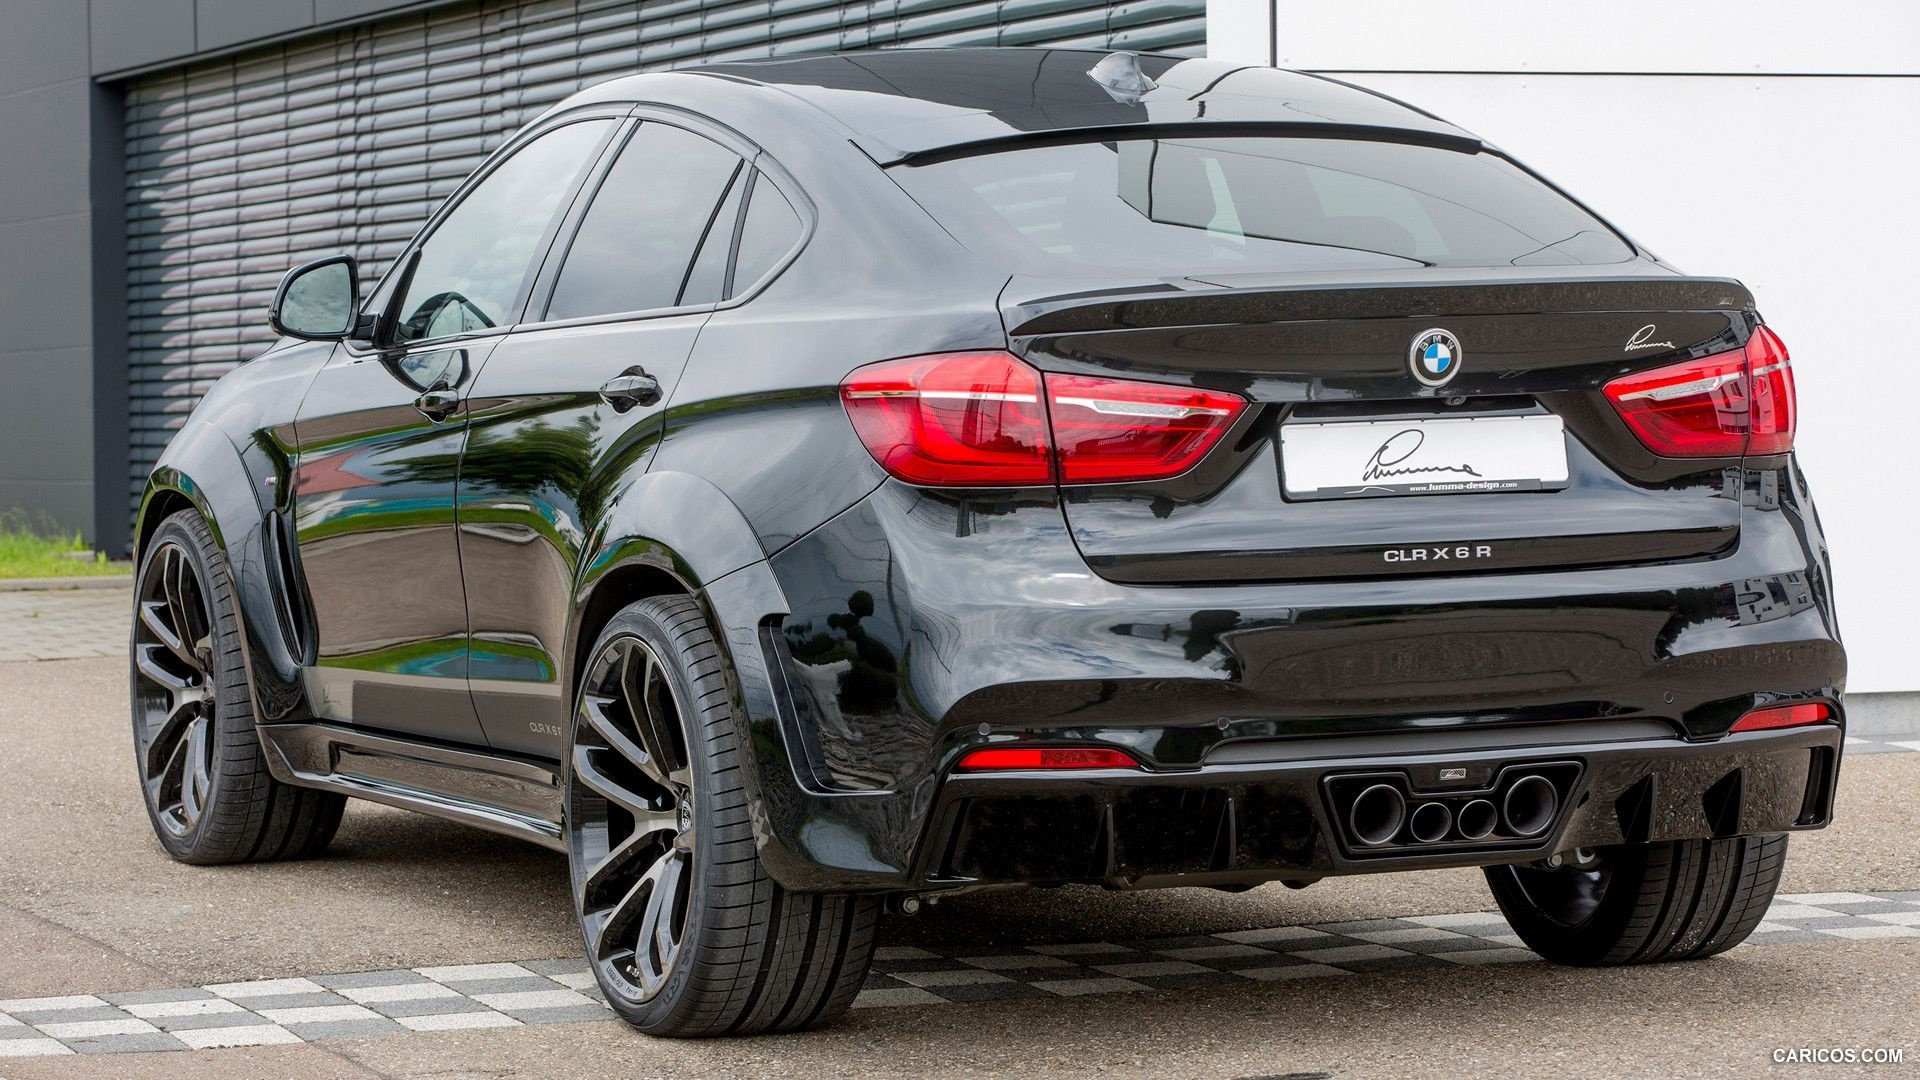 2015 lumma design clr x6 r based on bmw x6 wallpaper things to